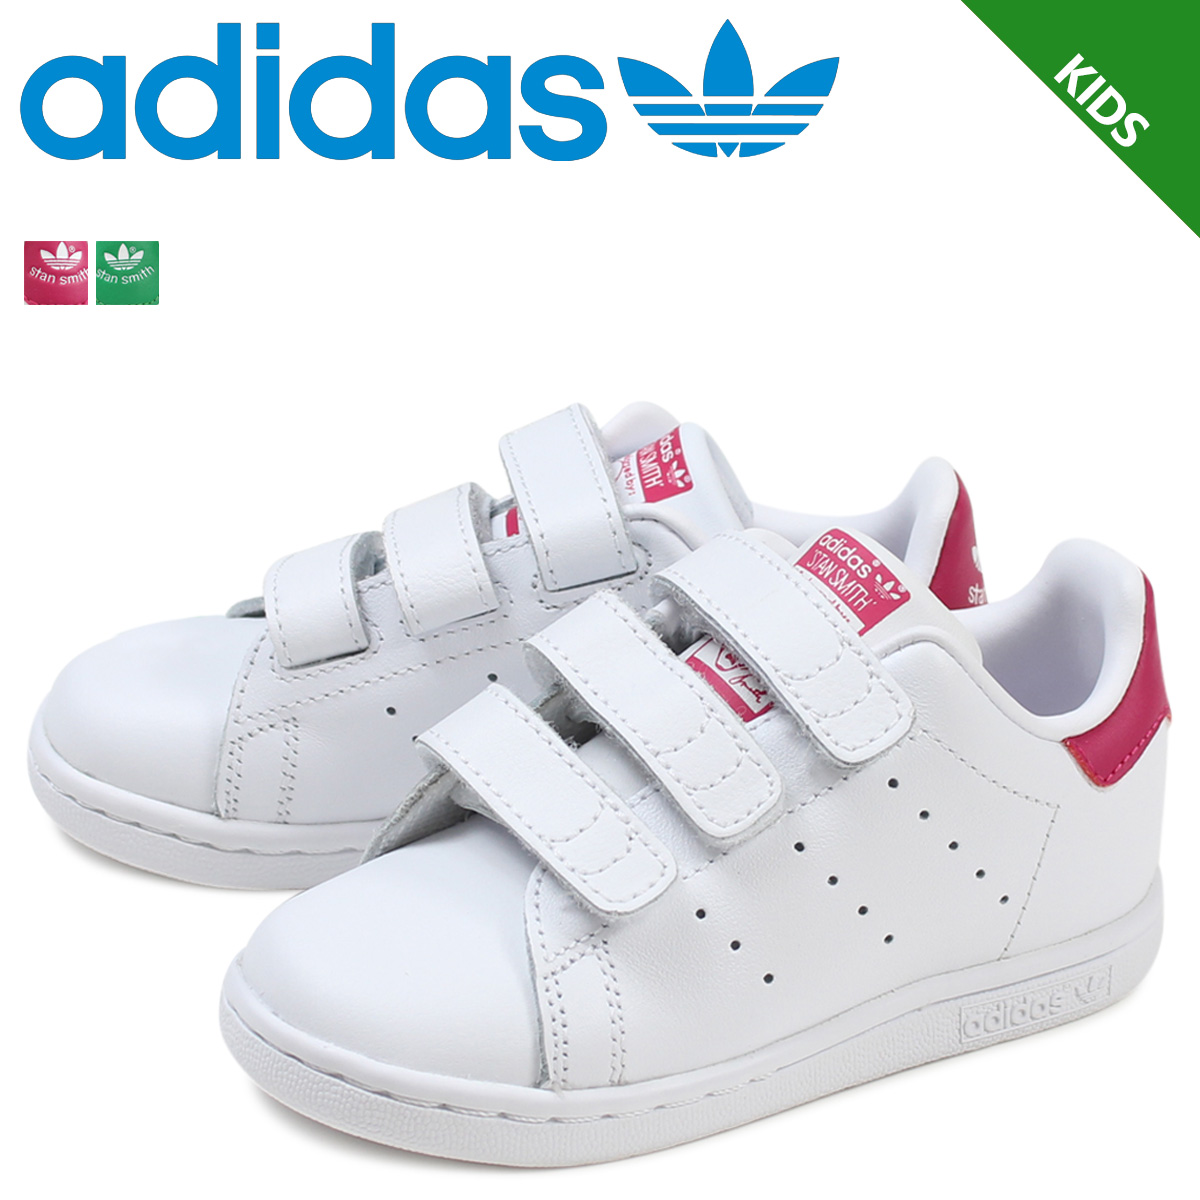 Sugar Online Shop | Rakuten Global Market: [SOLD OUT] adidas originals  adidas Originals Stan Smith sneakers baby kids STAN SMITH CF I B32704 shoes  white